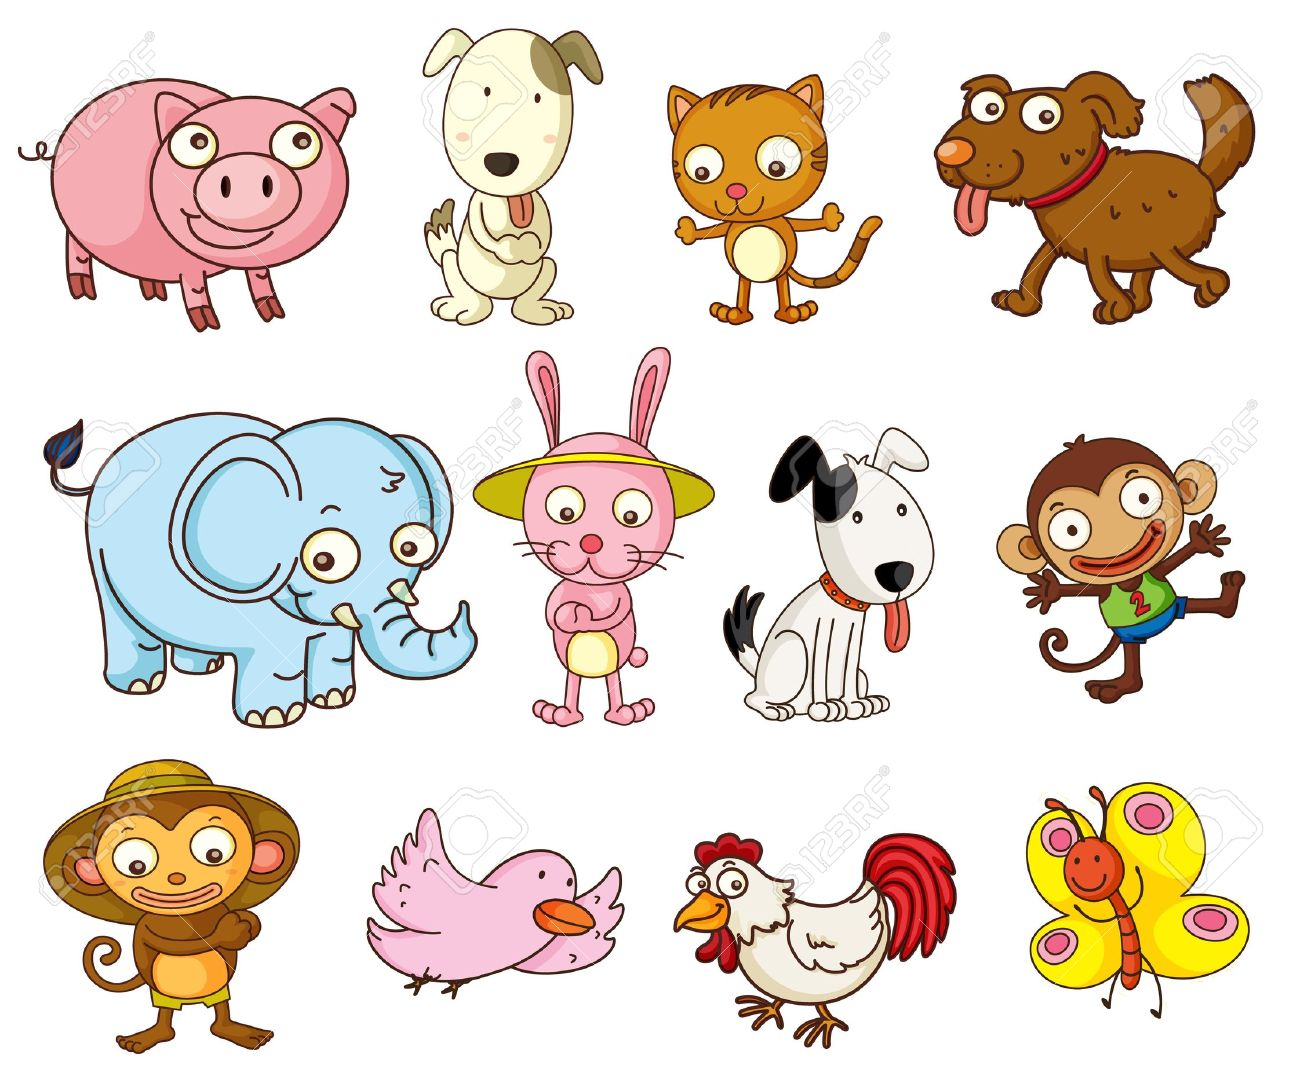 26354 Animals free clipart.